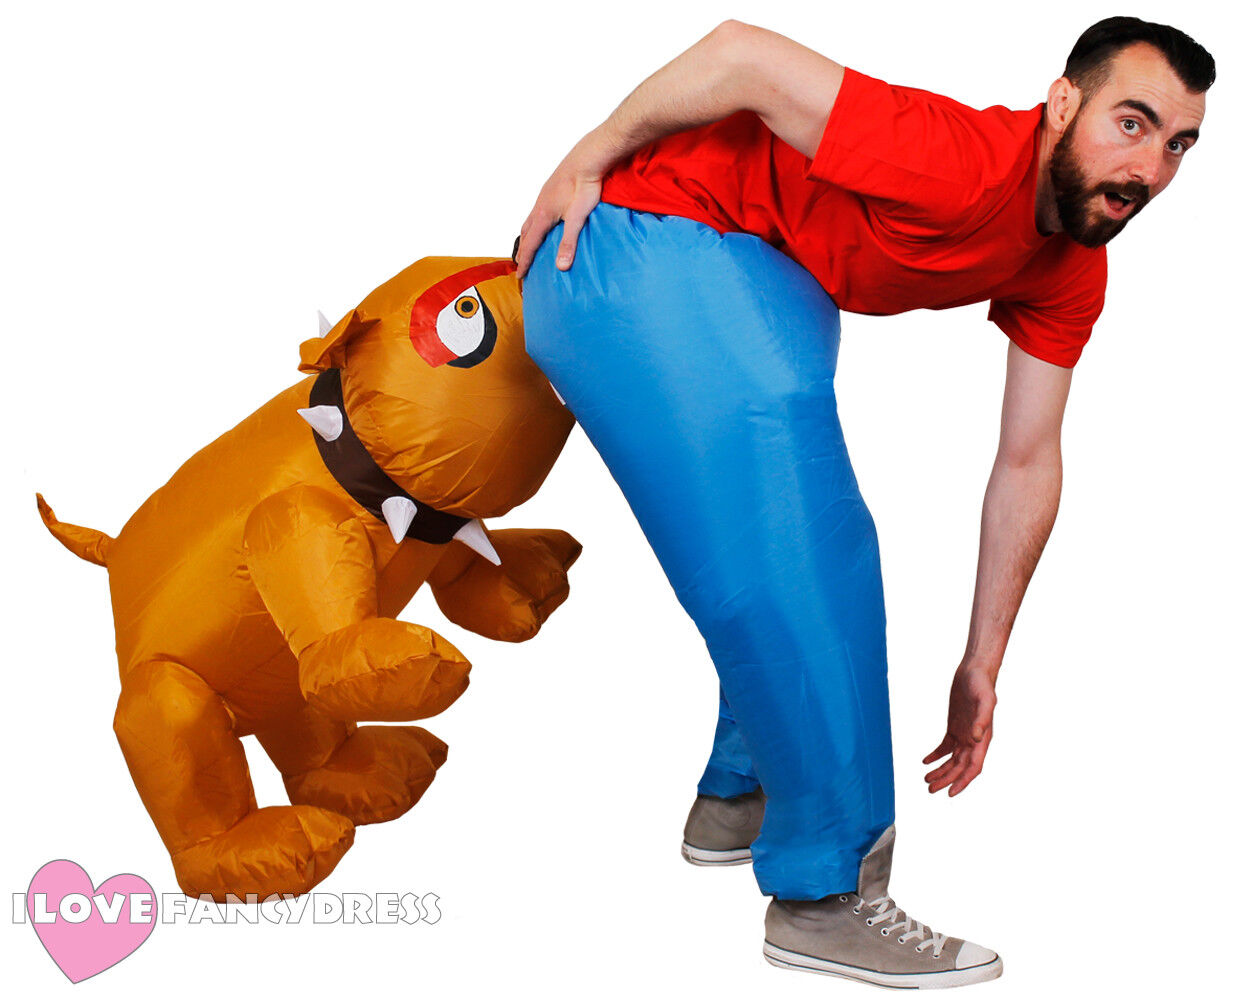 Cartoon Characters 80s Fancy Dress : Inflatable dog bite costume adult novelty fancy dress postman stag